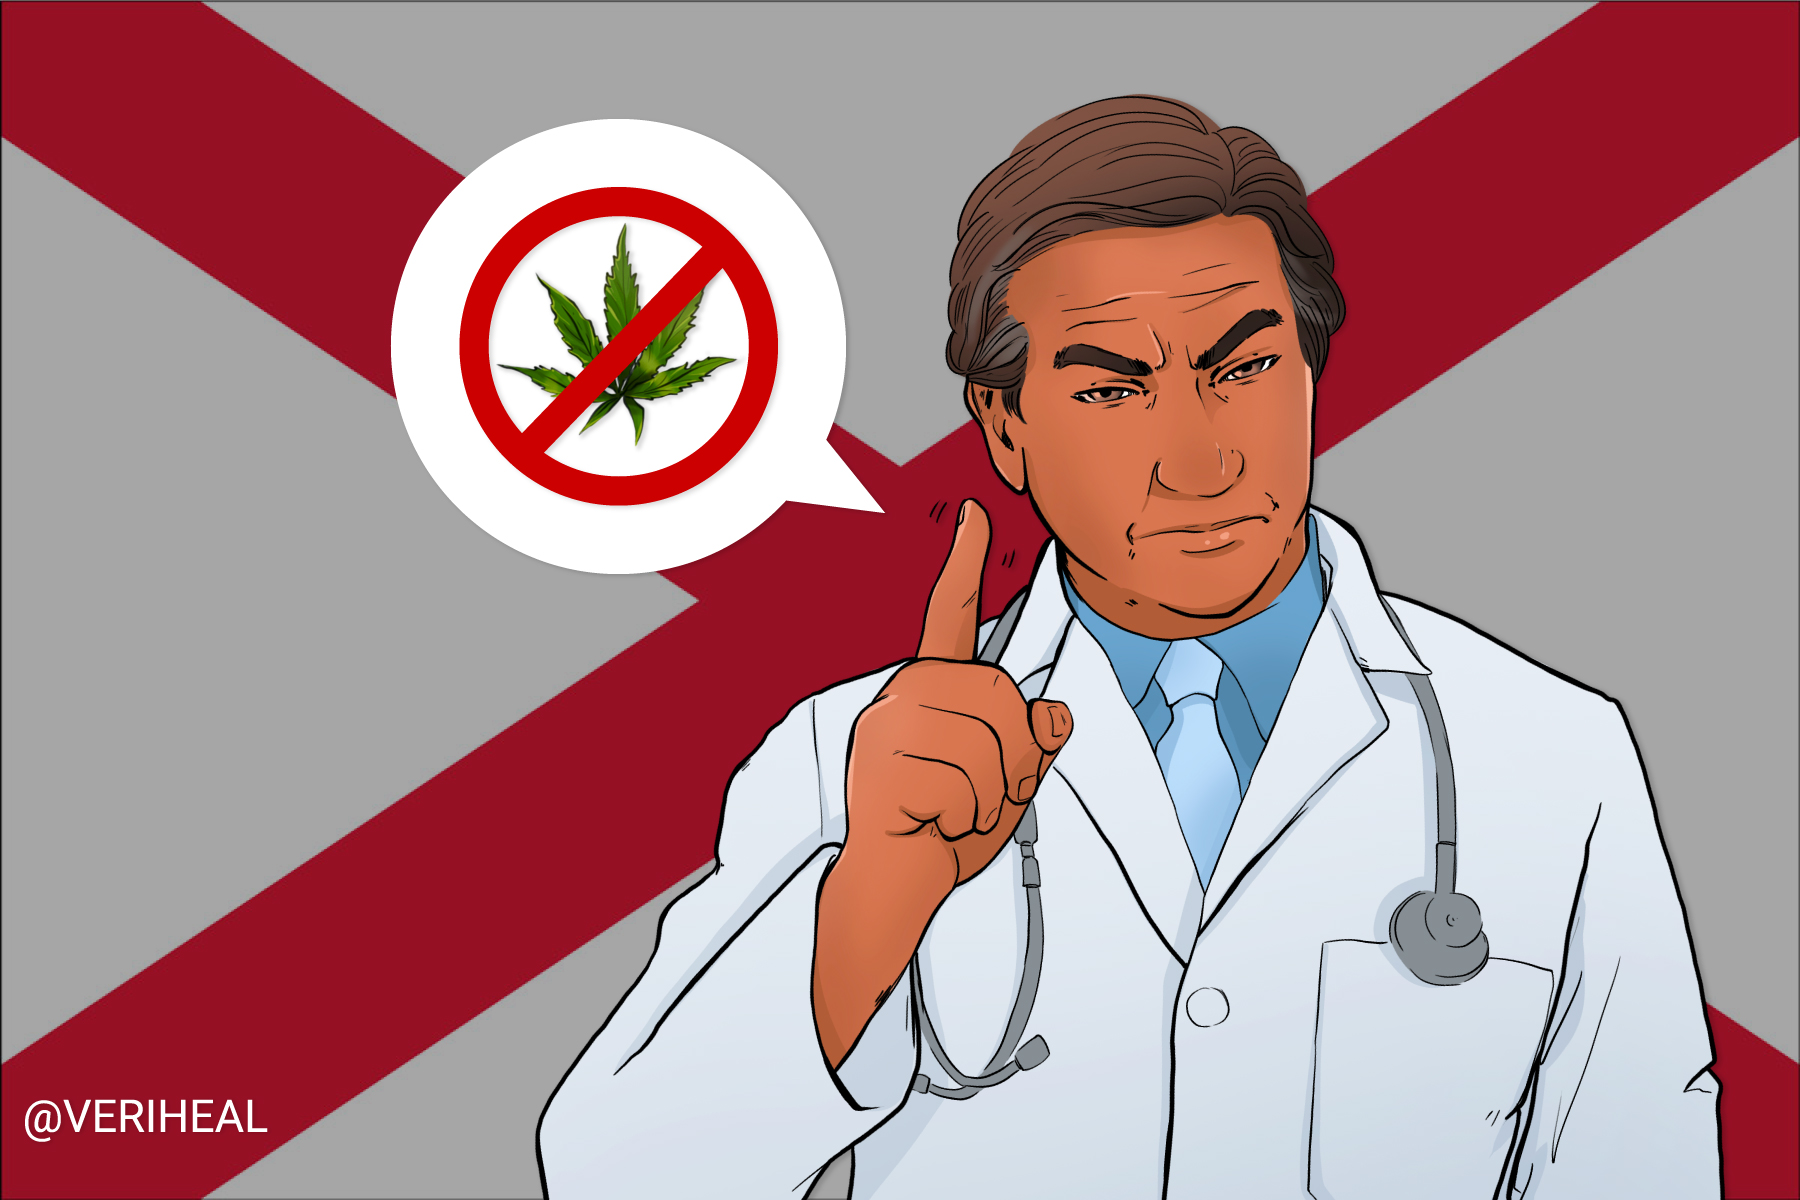 Alabama Legalization Gets Approved Despite Reefer Madness Among Doctors and Lawmakers